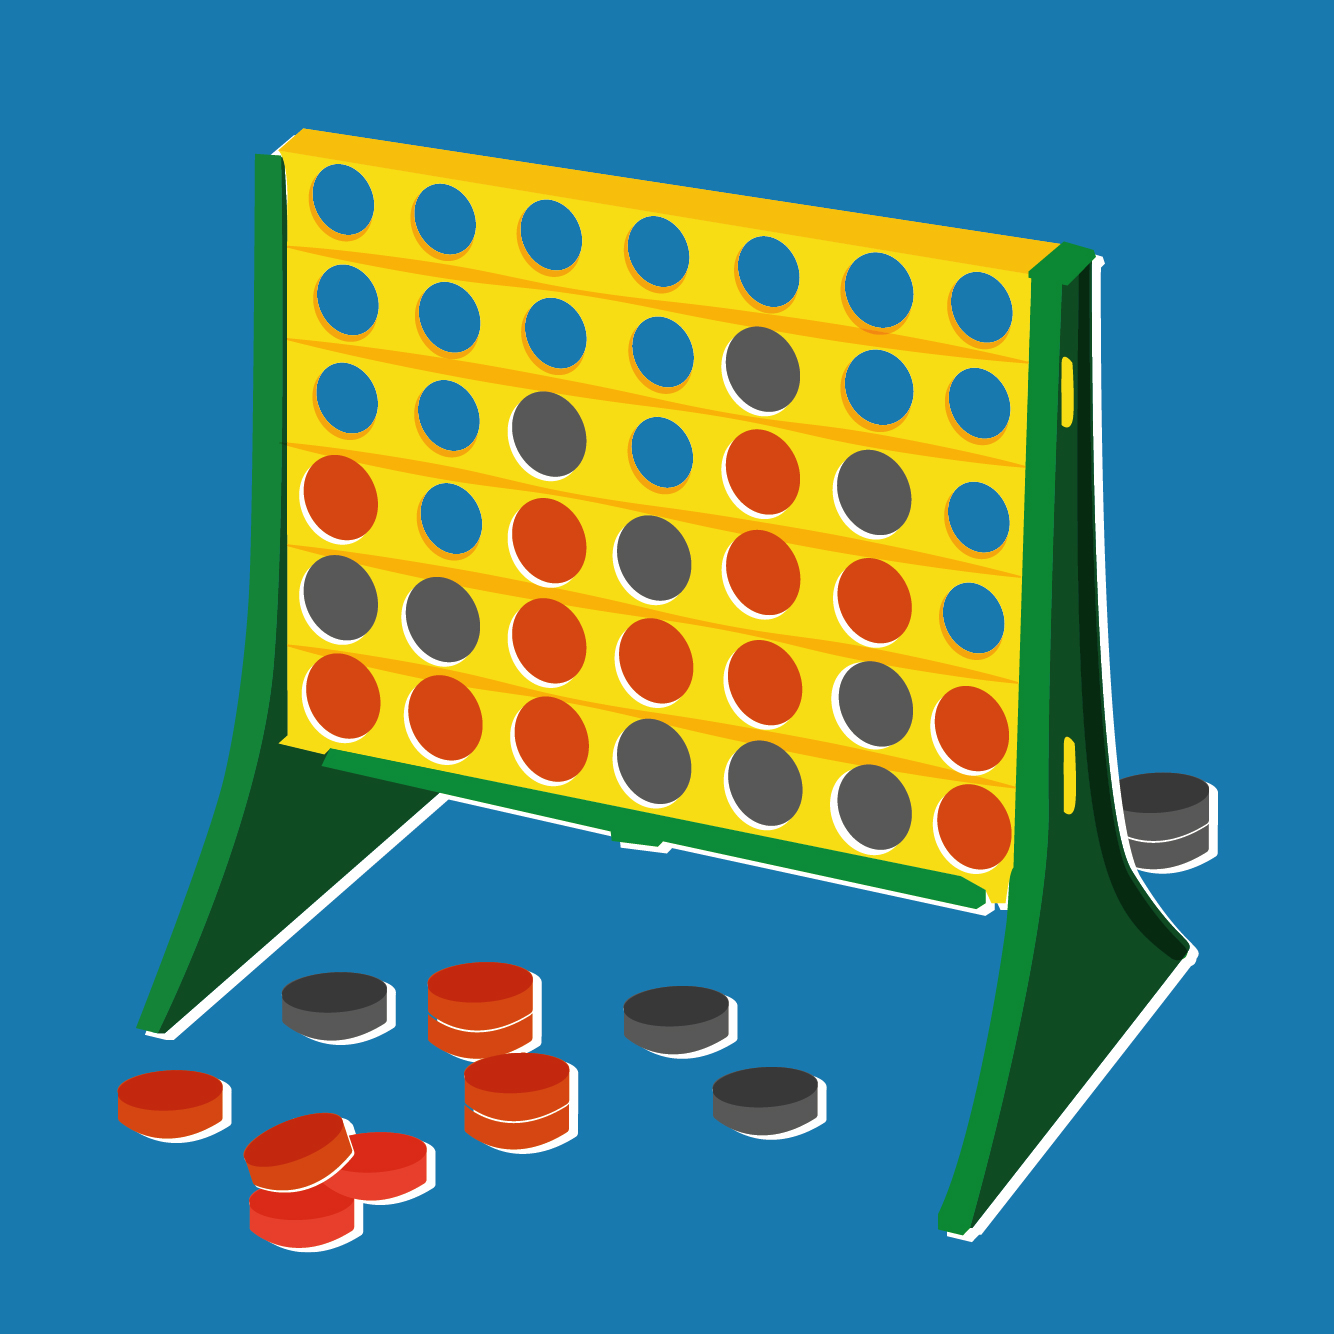 A connect 4 game